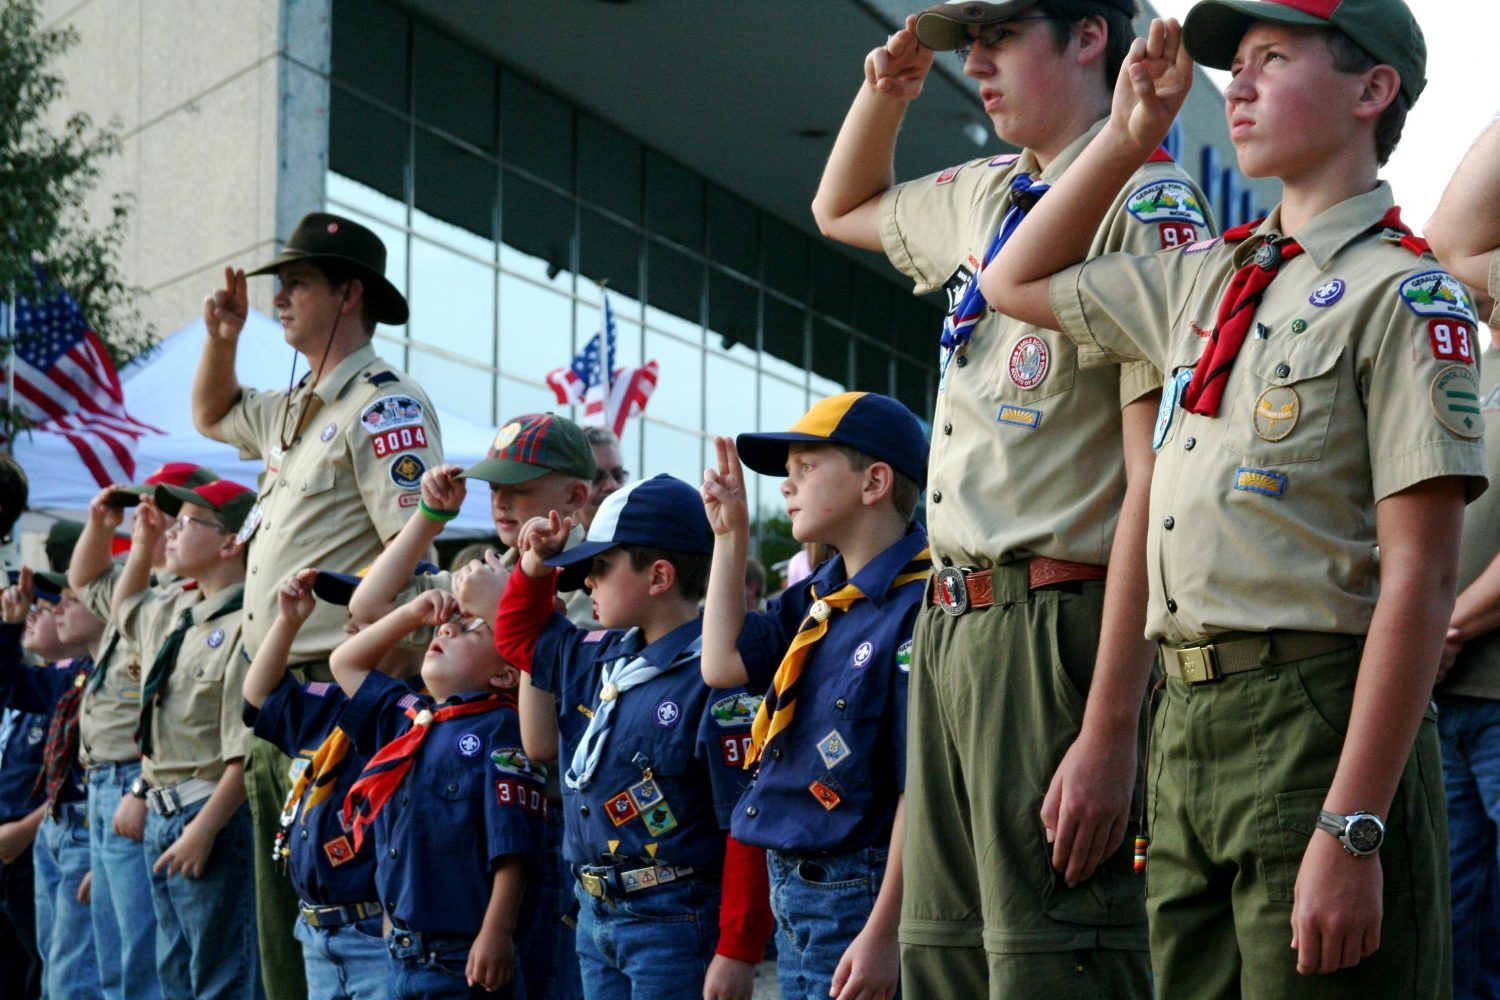 boy scouts of america to accept transgender applicants wuft news. Black Bedroom Furniture Sets. Home Design Ideas